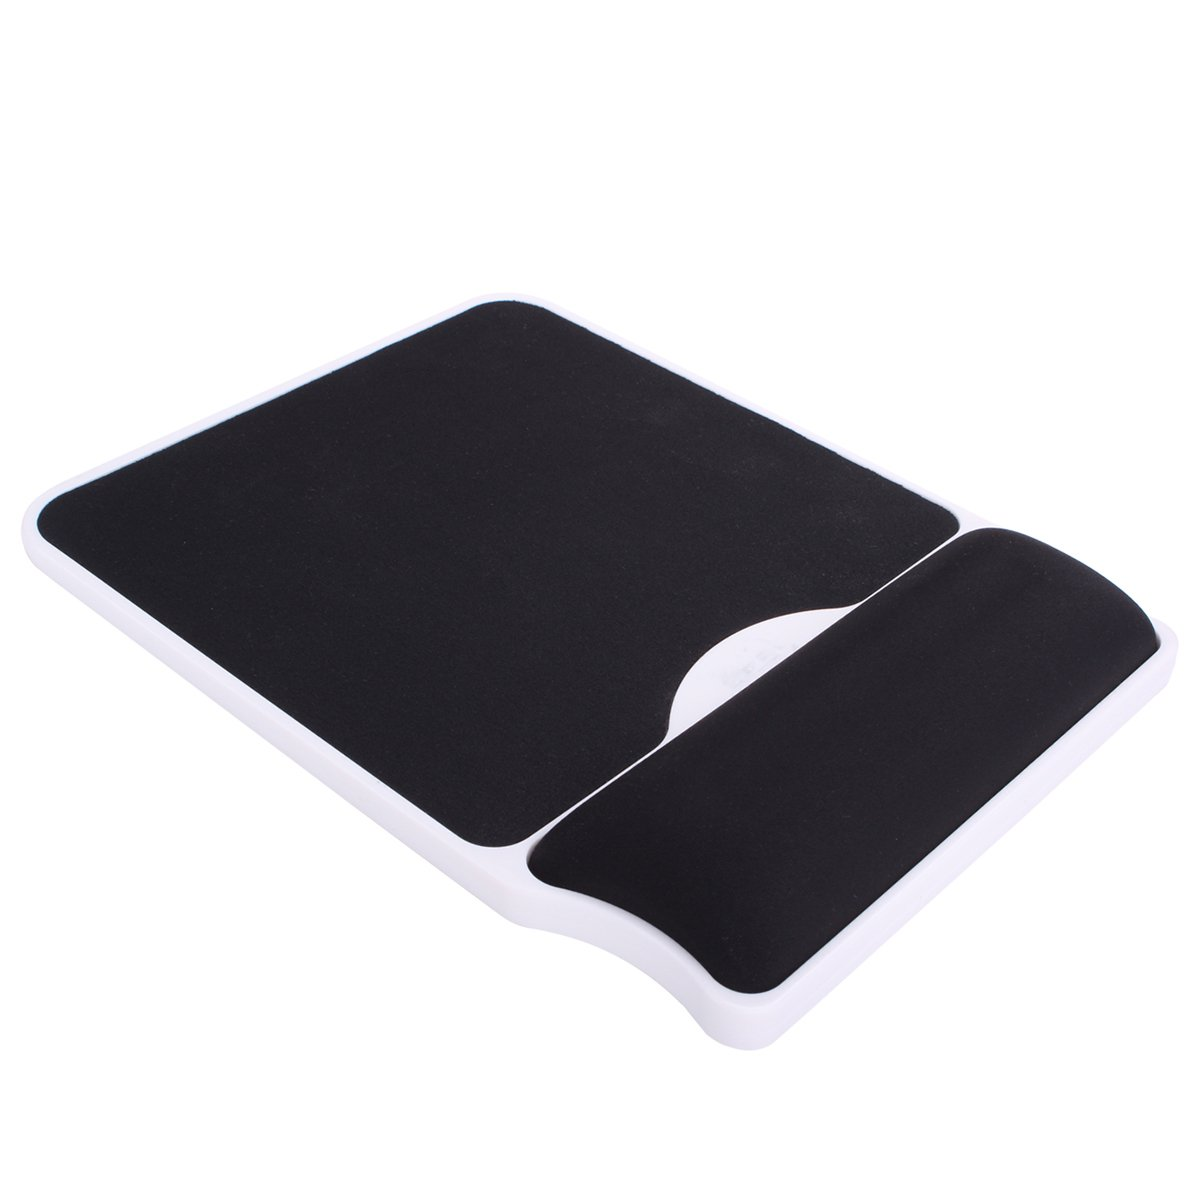 Mouse Pad with Gel Wrist Rest Support - Mousepad with Memory Foam Non-Slip ABS Base Wrist Rest Support for Gaming Typist Office (Black 2)